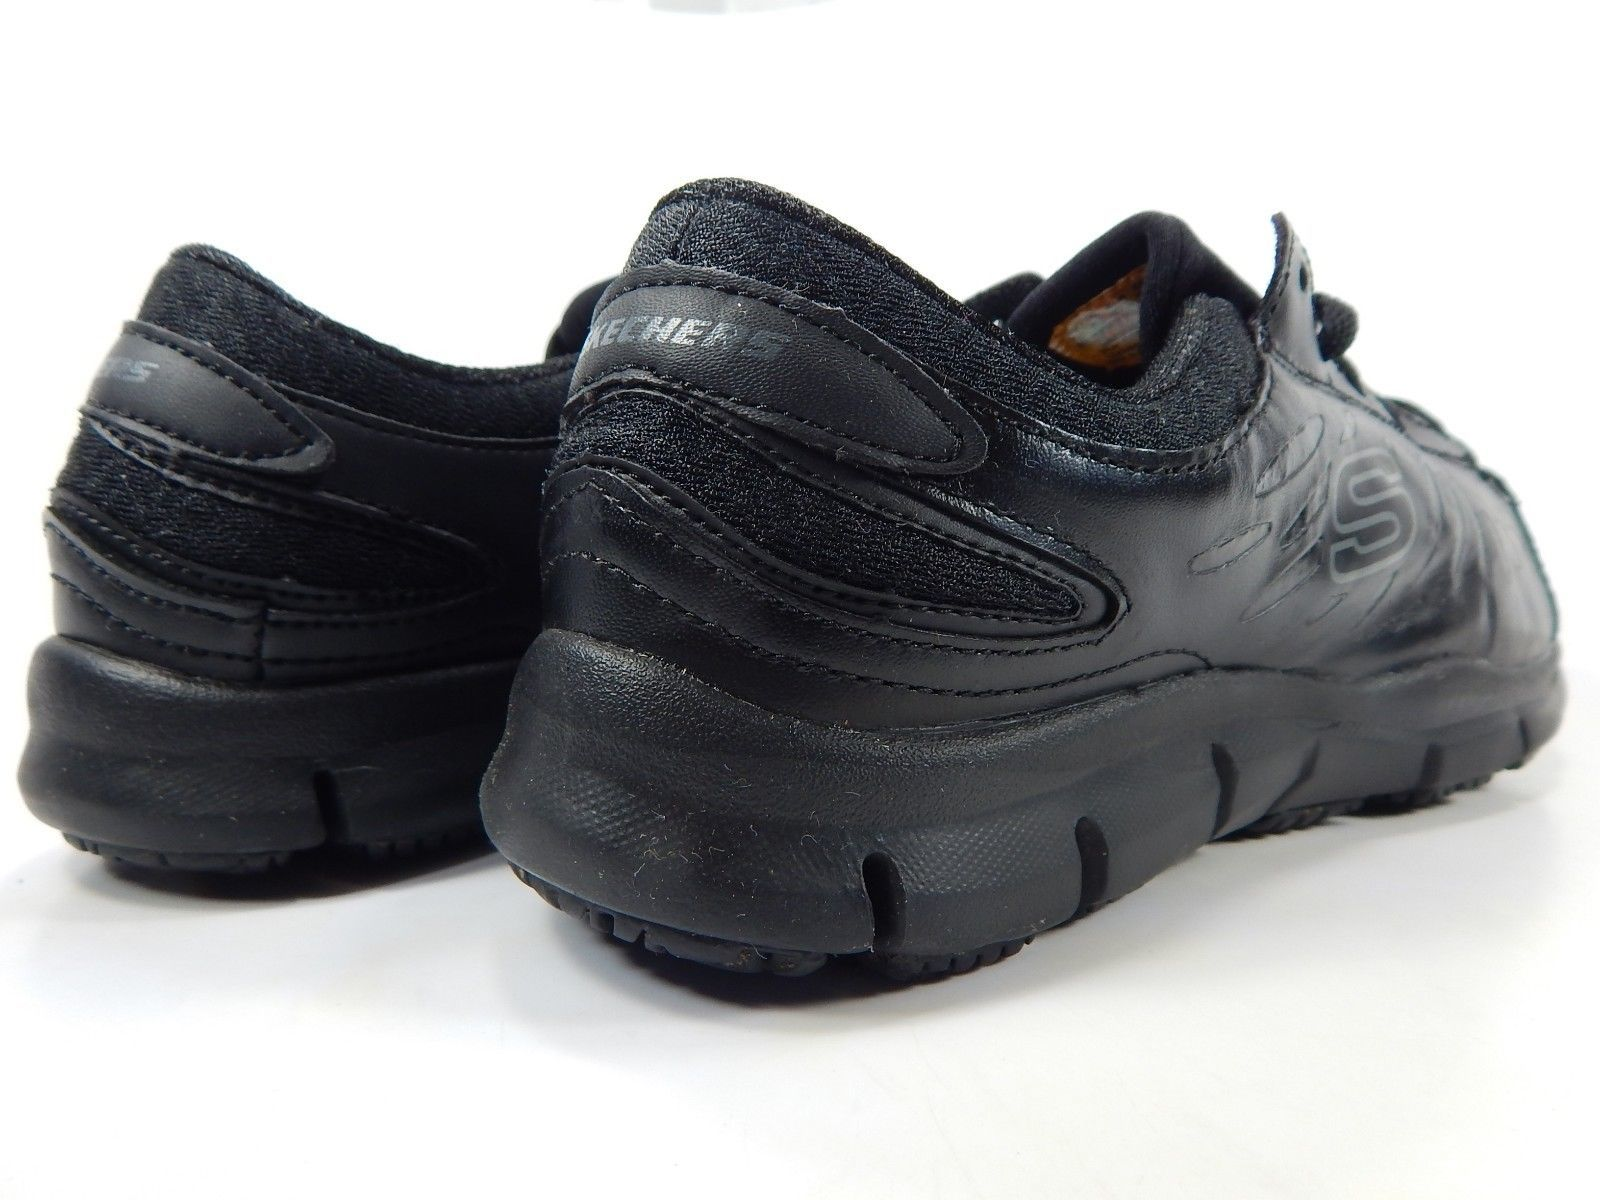 Skechers Relaxed Fit - Eldred SR 7.5 EW 2E EXTRA WIDE EU 37.5 Women's Work Shoes